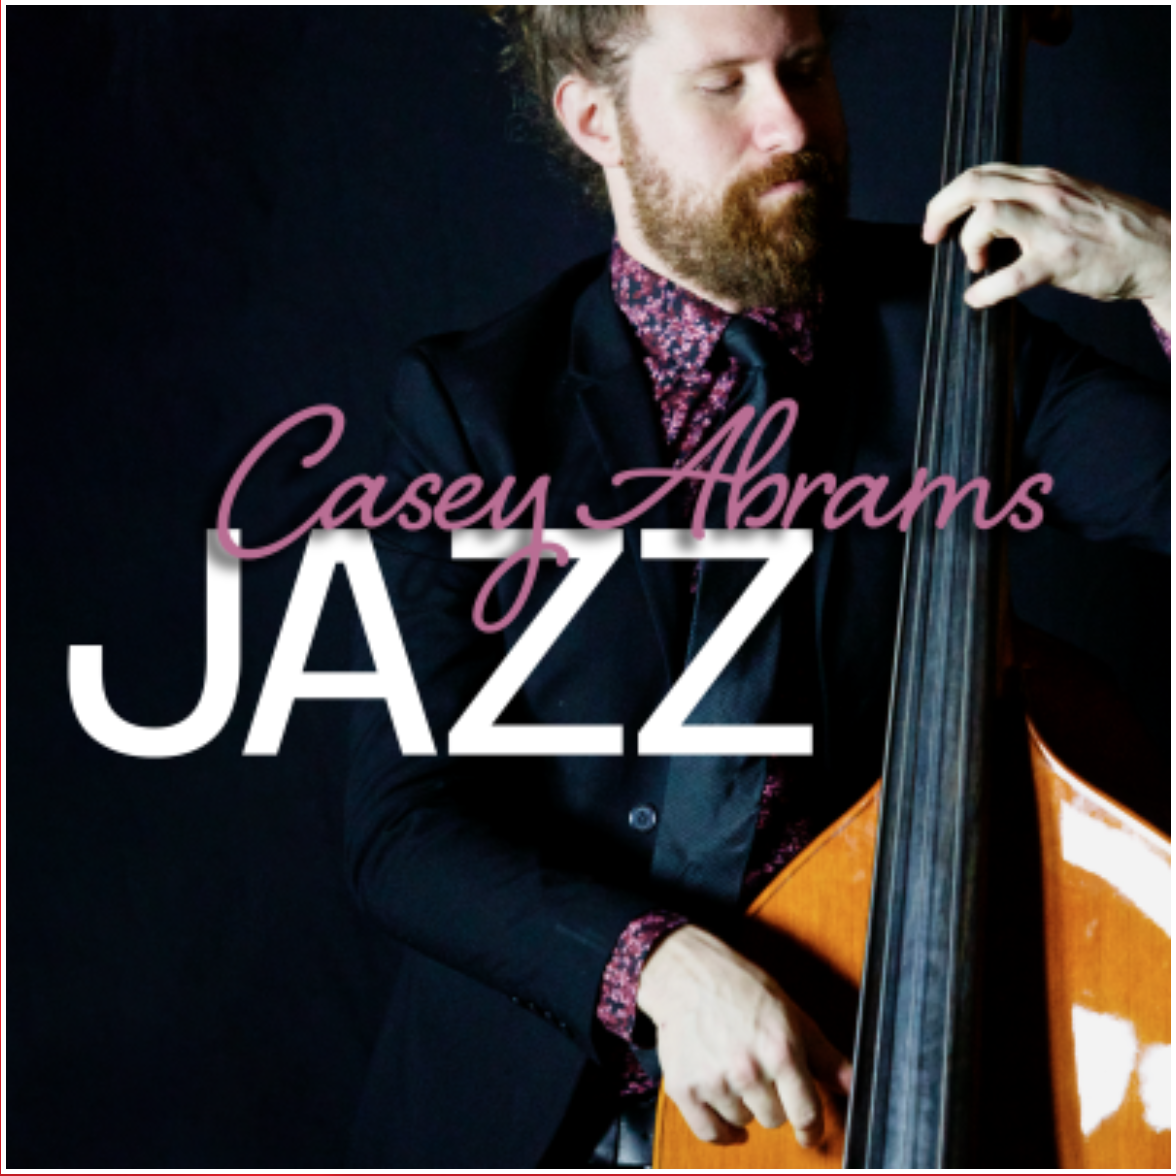 Casey Abrams Jazz Album Cover.png